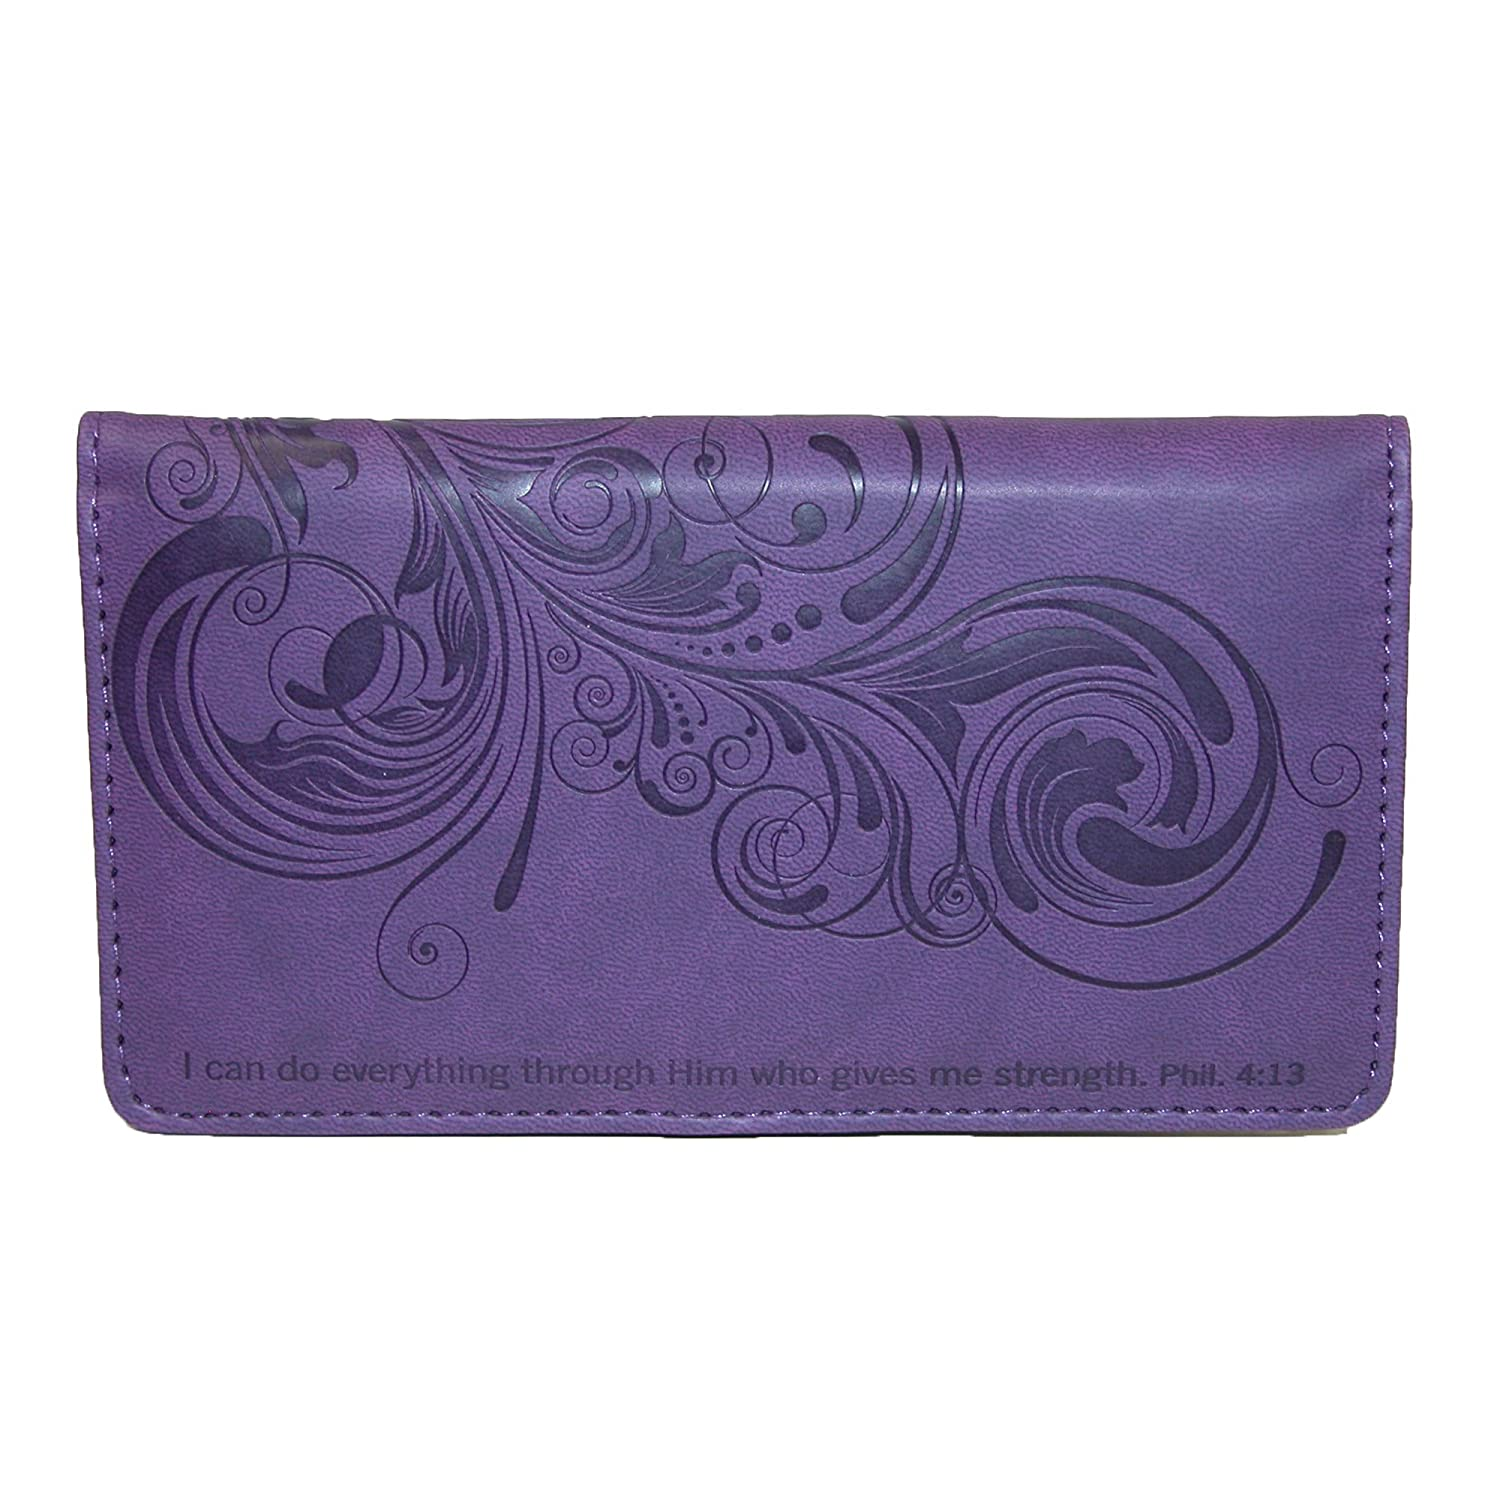 Christian Art Gifts Women's Religious Script Checkbook Cover, Purple